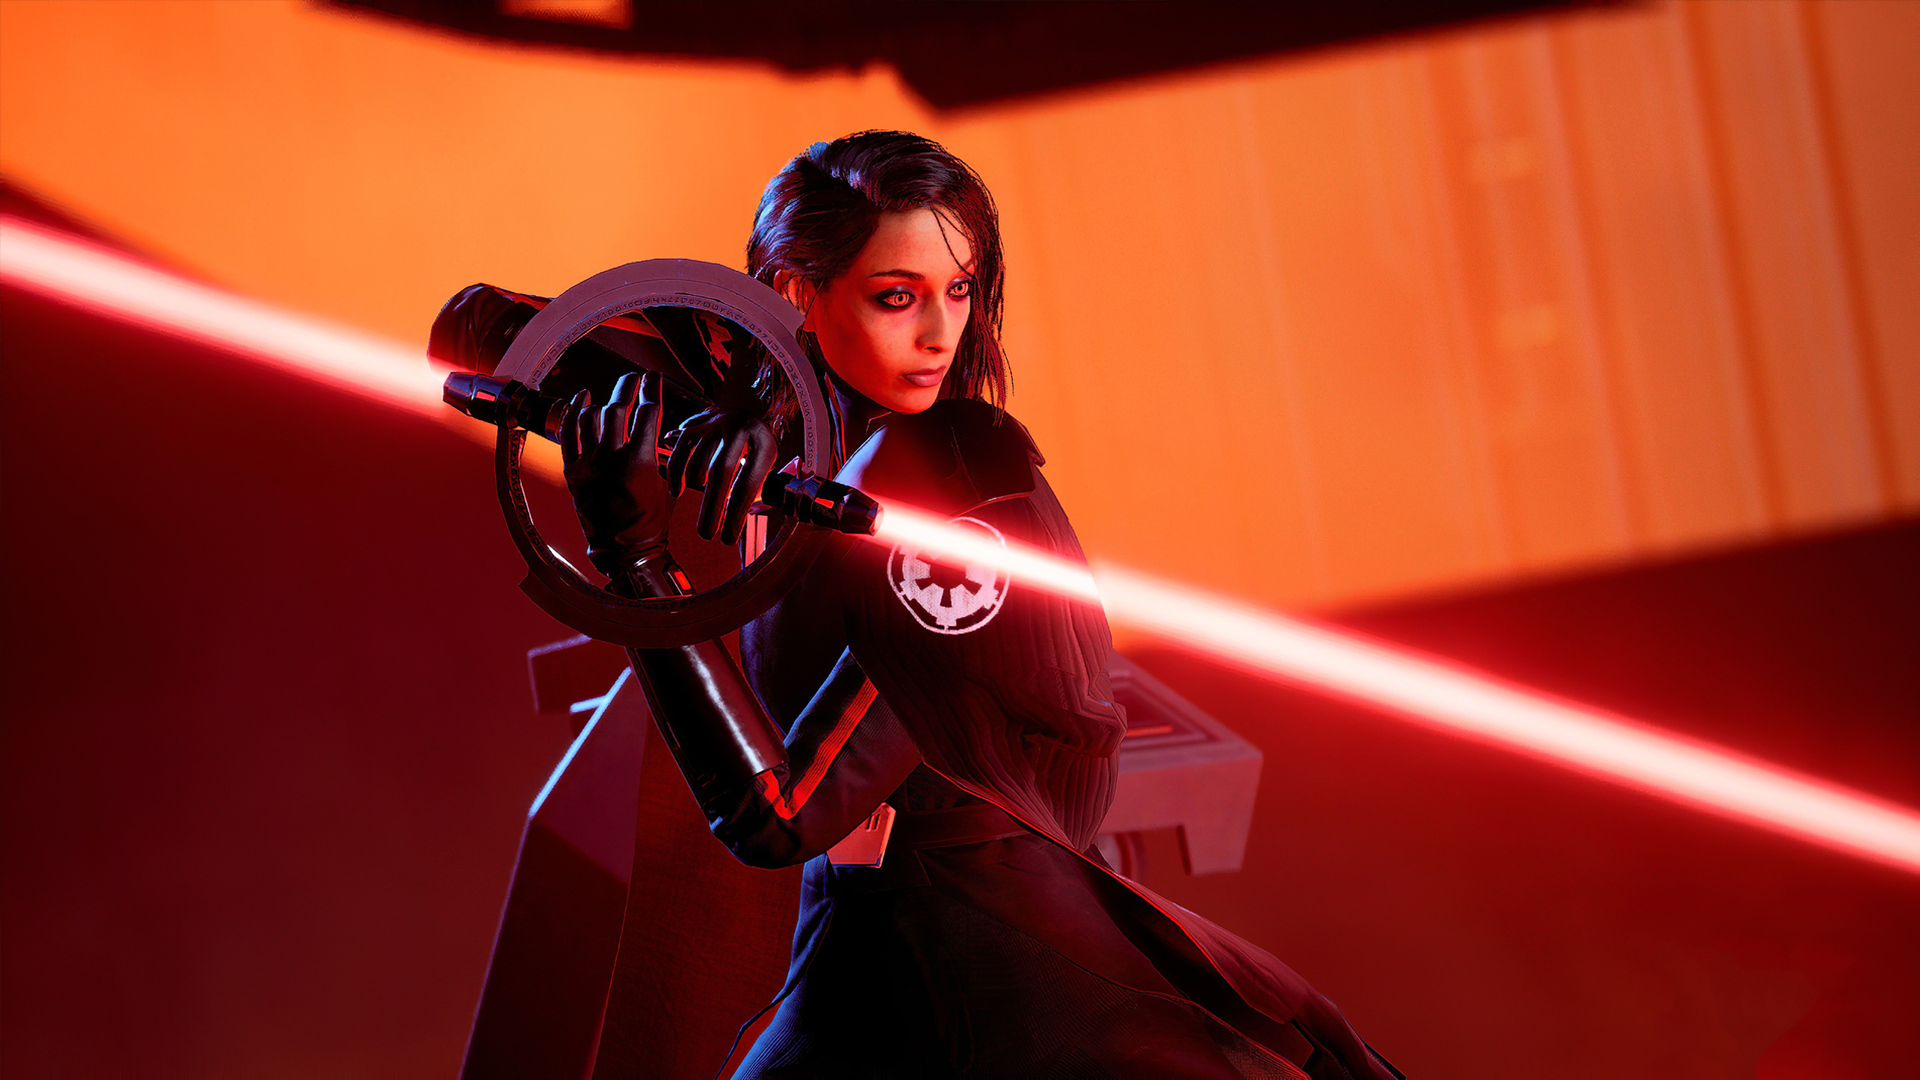 1920x1080 Star Wars Jedi Fallen Order Red 4k Laptop Full Hd 1080p Hd 4k Wallpapers Images Backgrounds Photos And Pictures